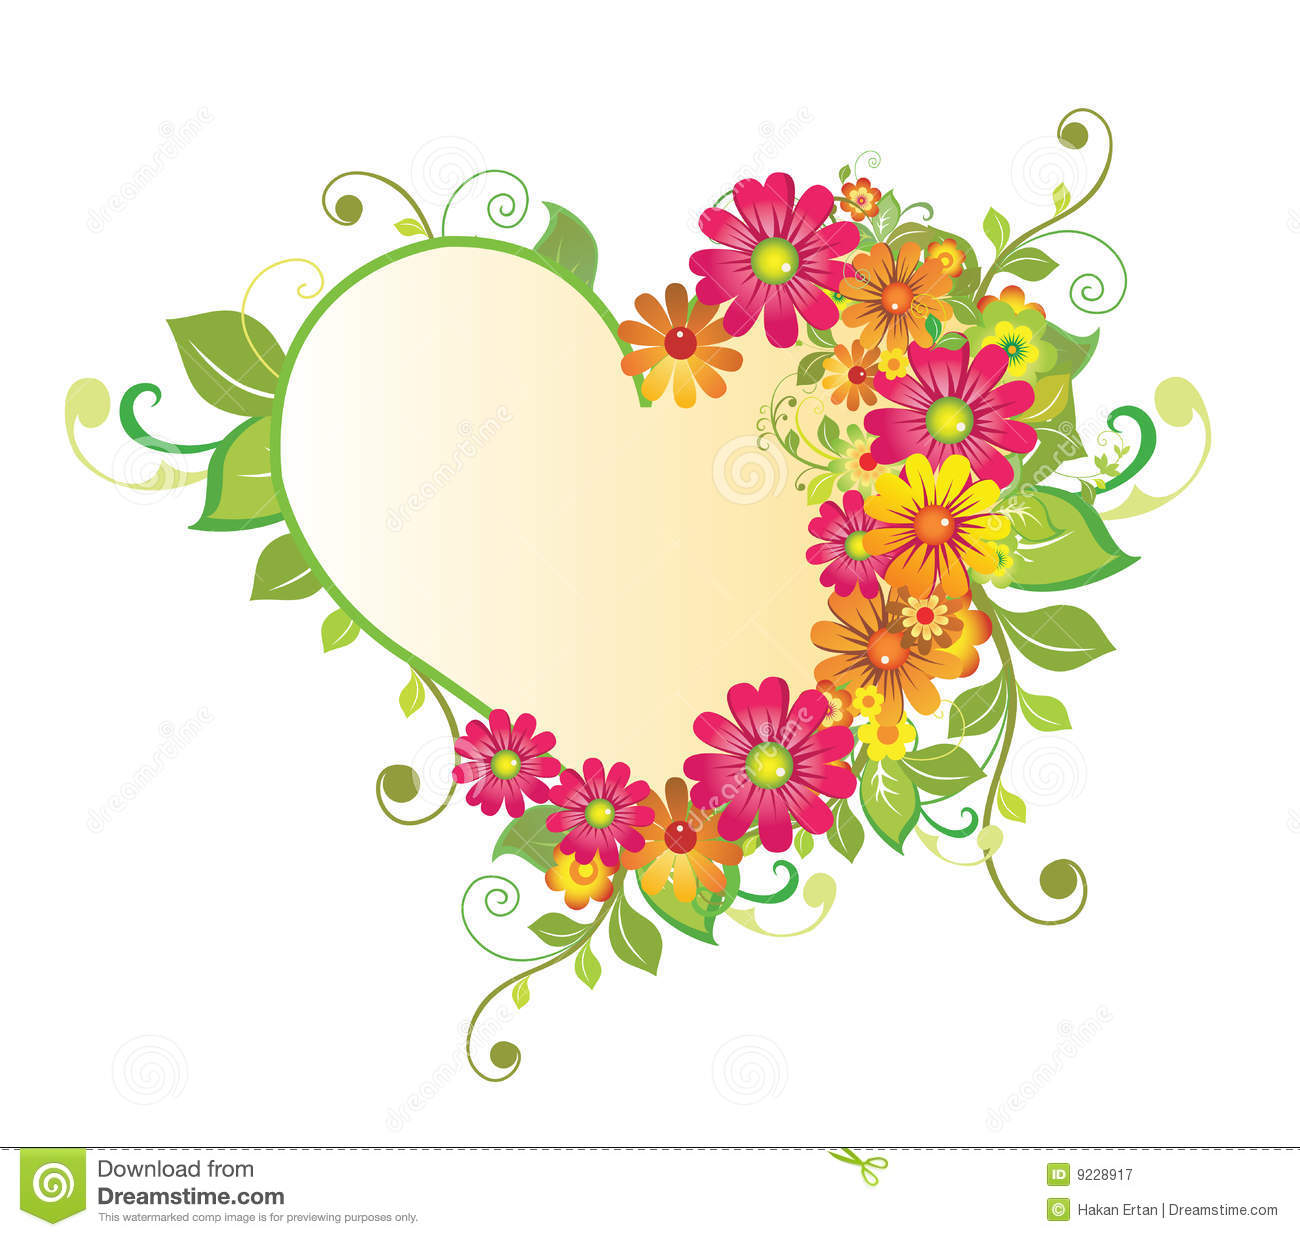 flower heart illustration   megapixl, Beautiful flower